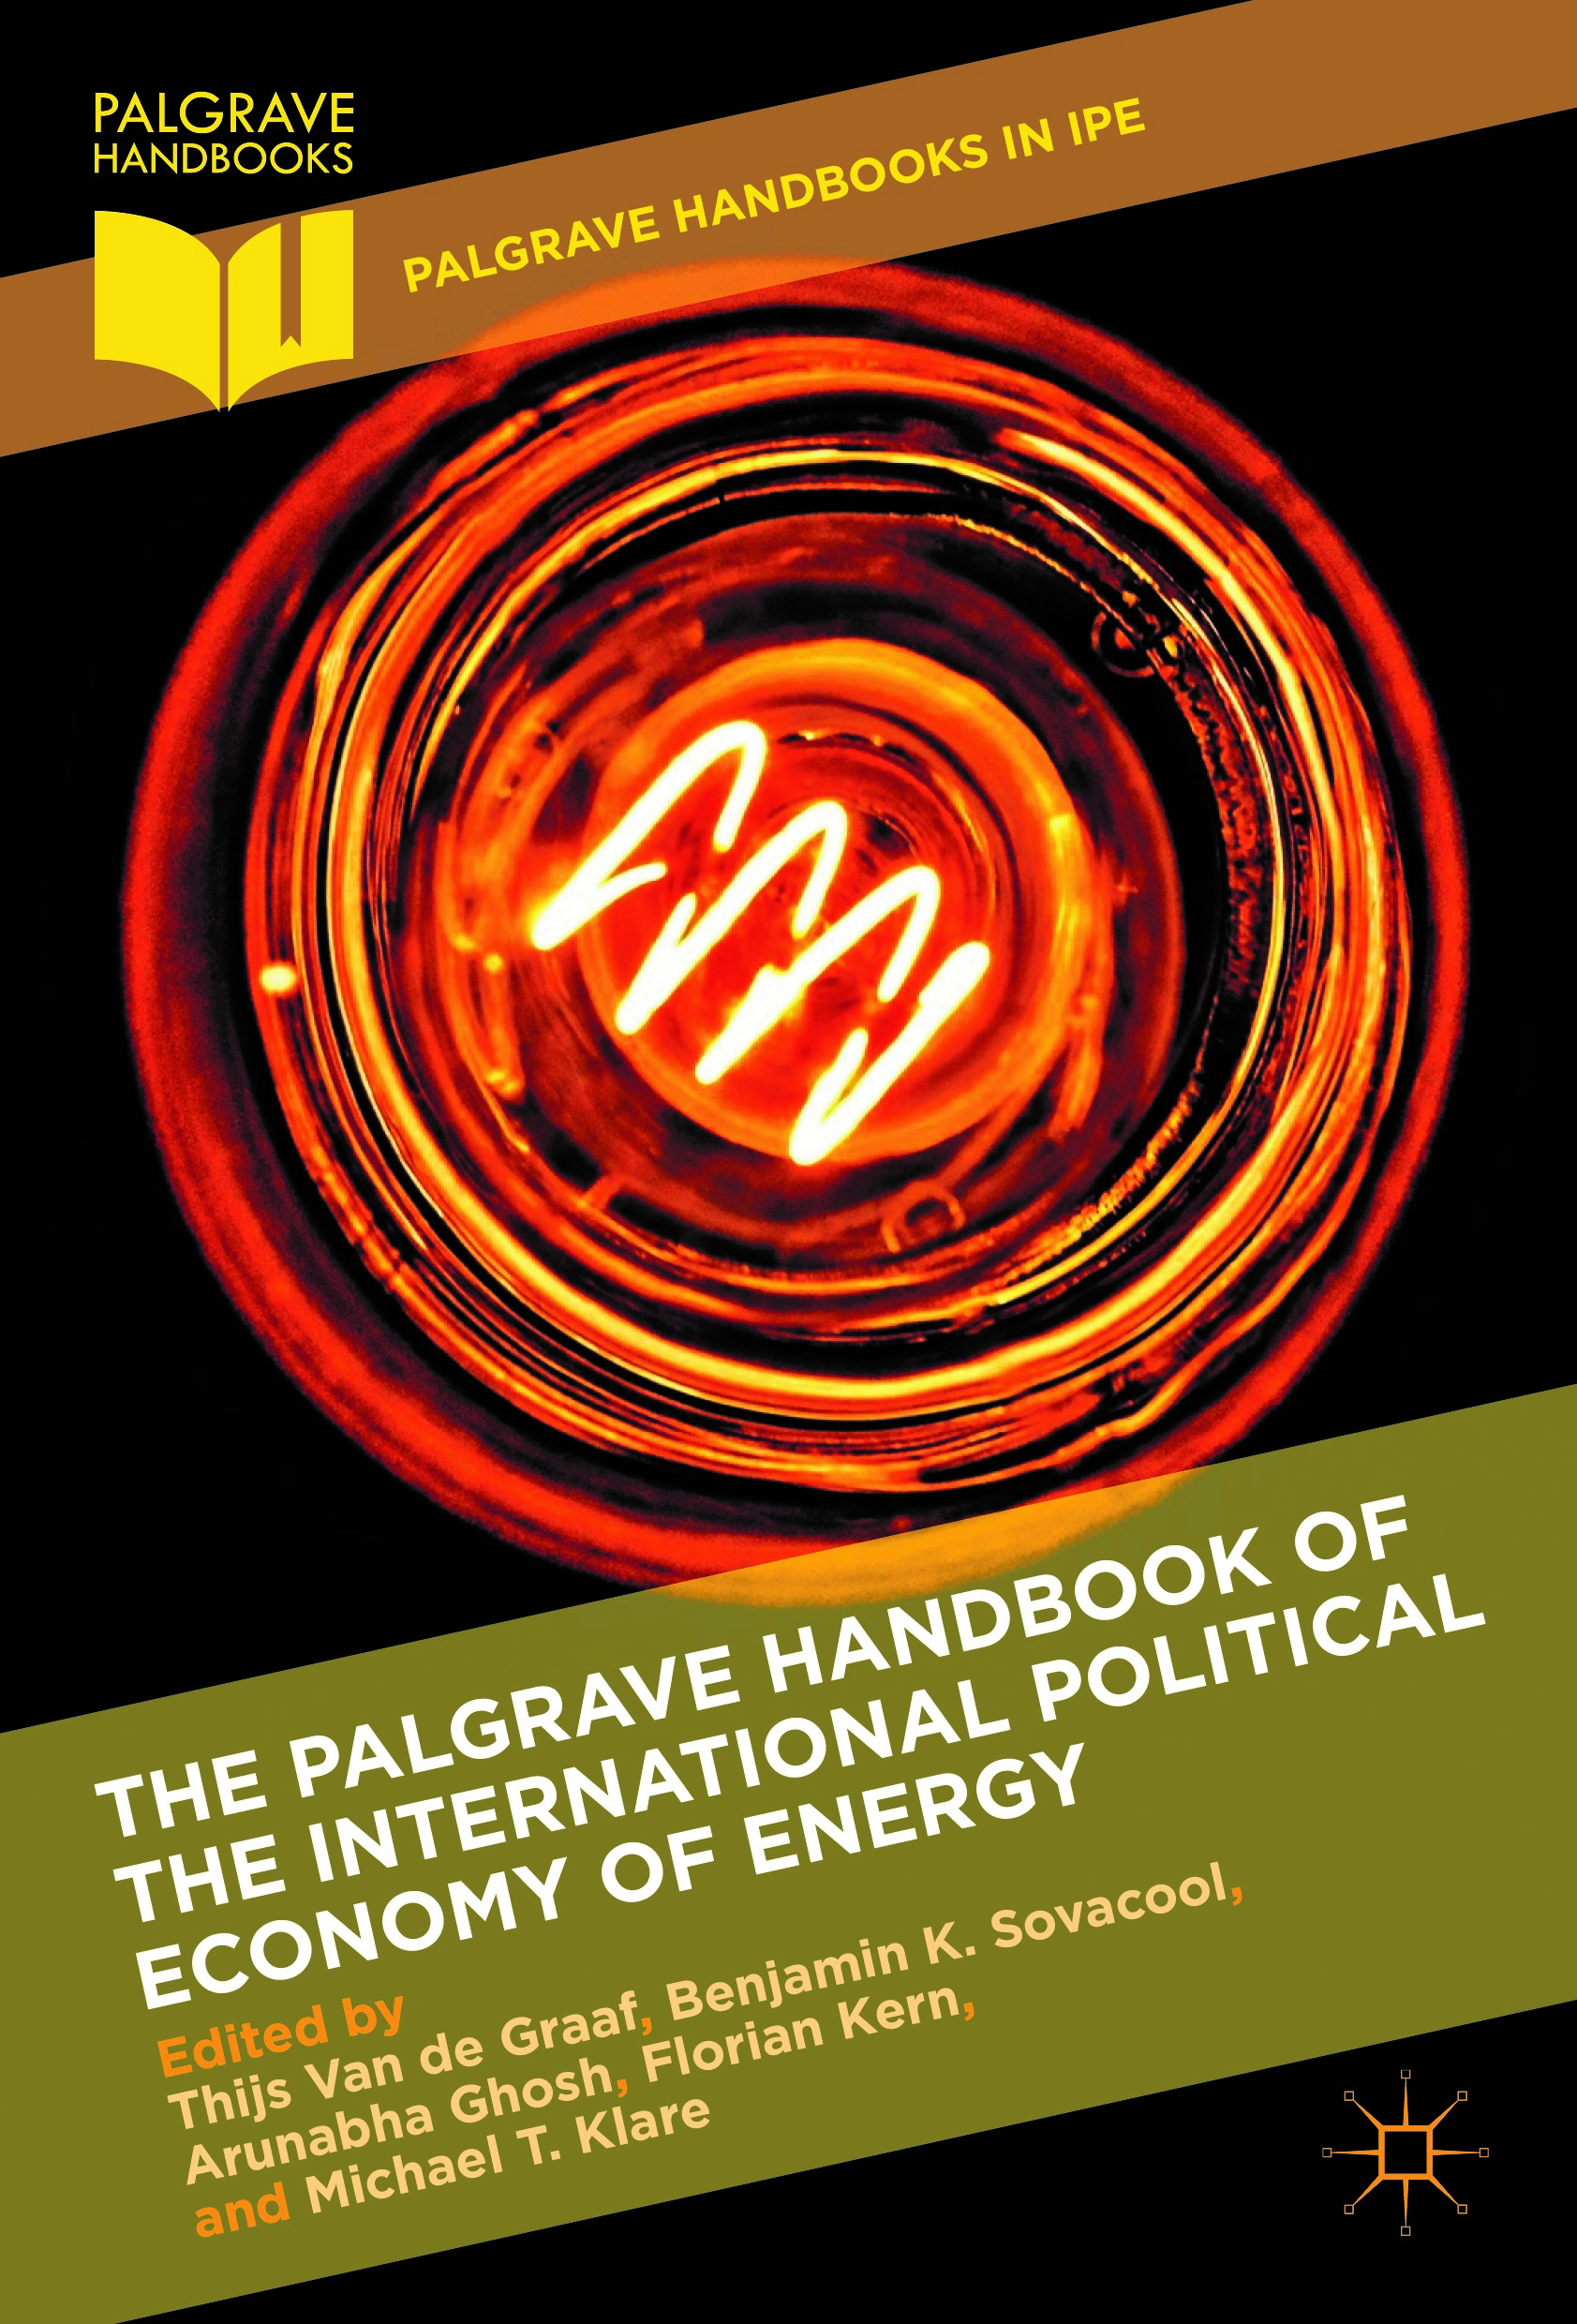 Book Review - The Palgrave Handbook of the International Political Economy of En